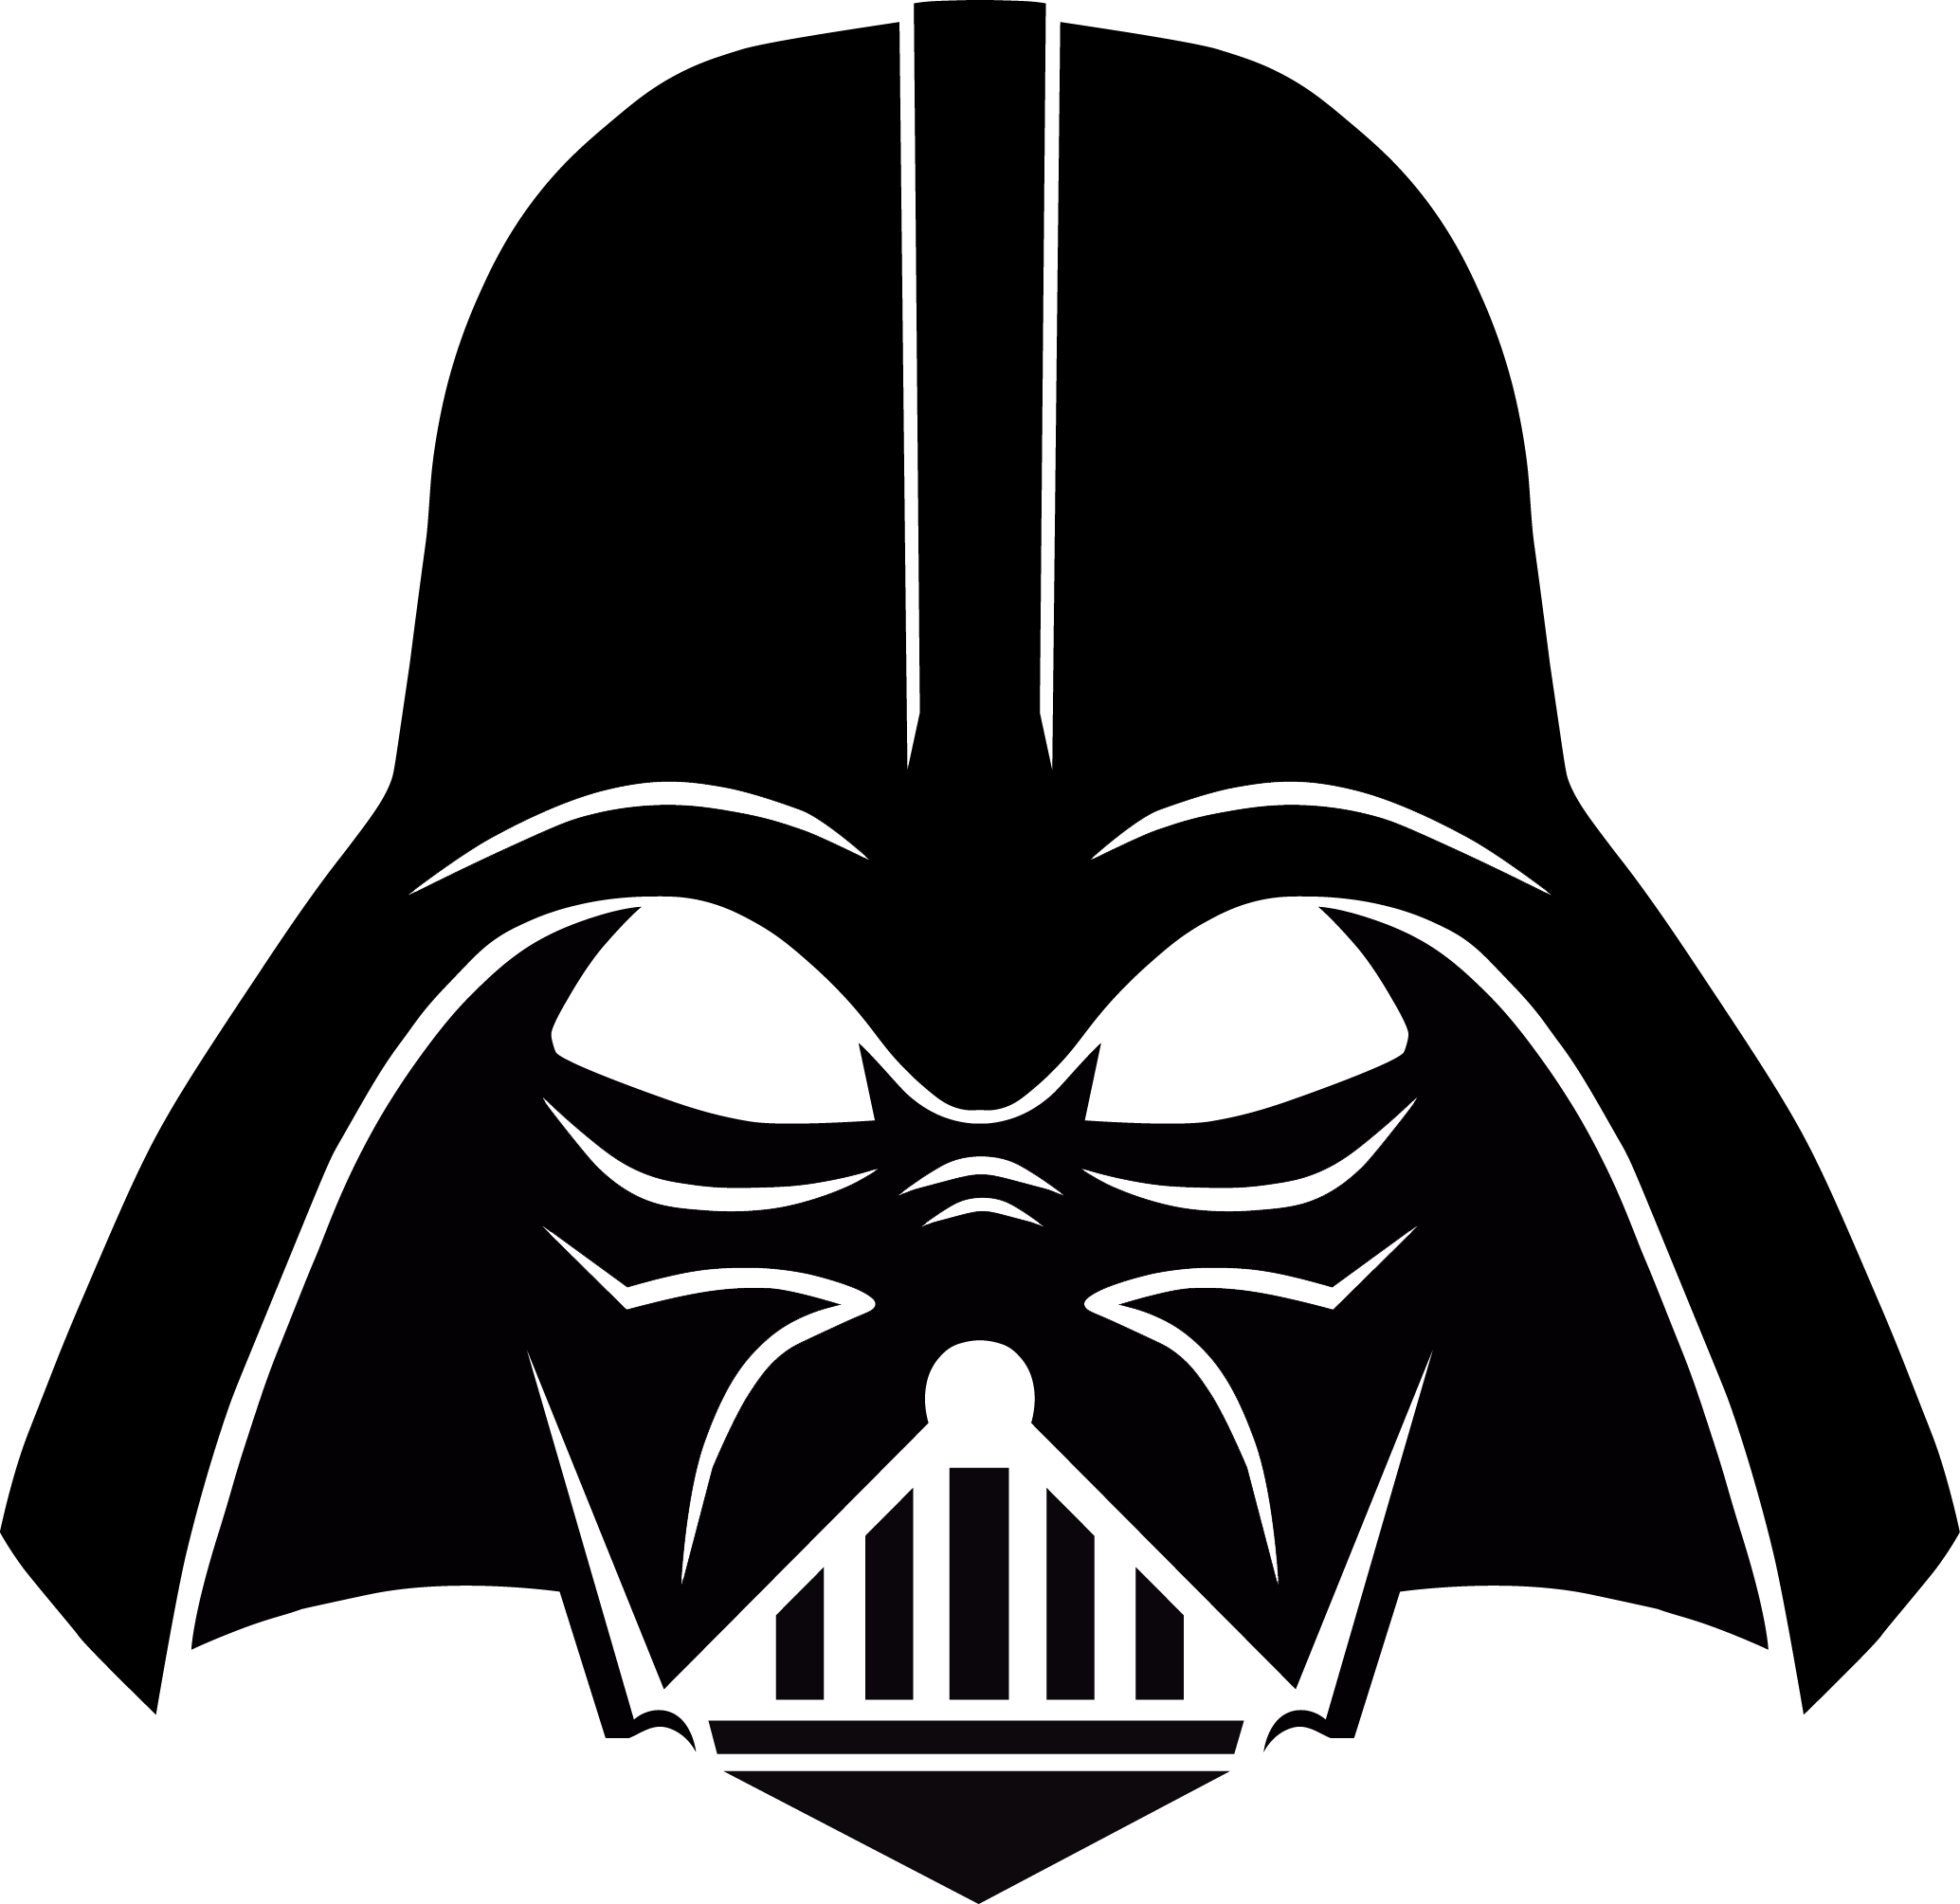 clip art download Chewbacca clipart darth vader FREE for download on rpelm